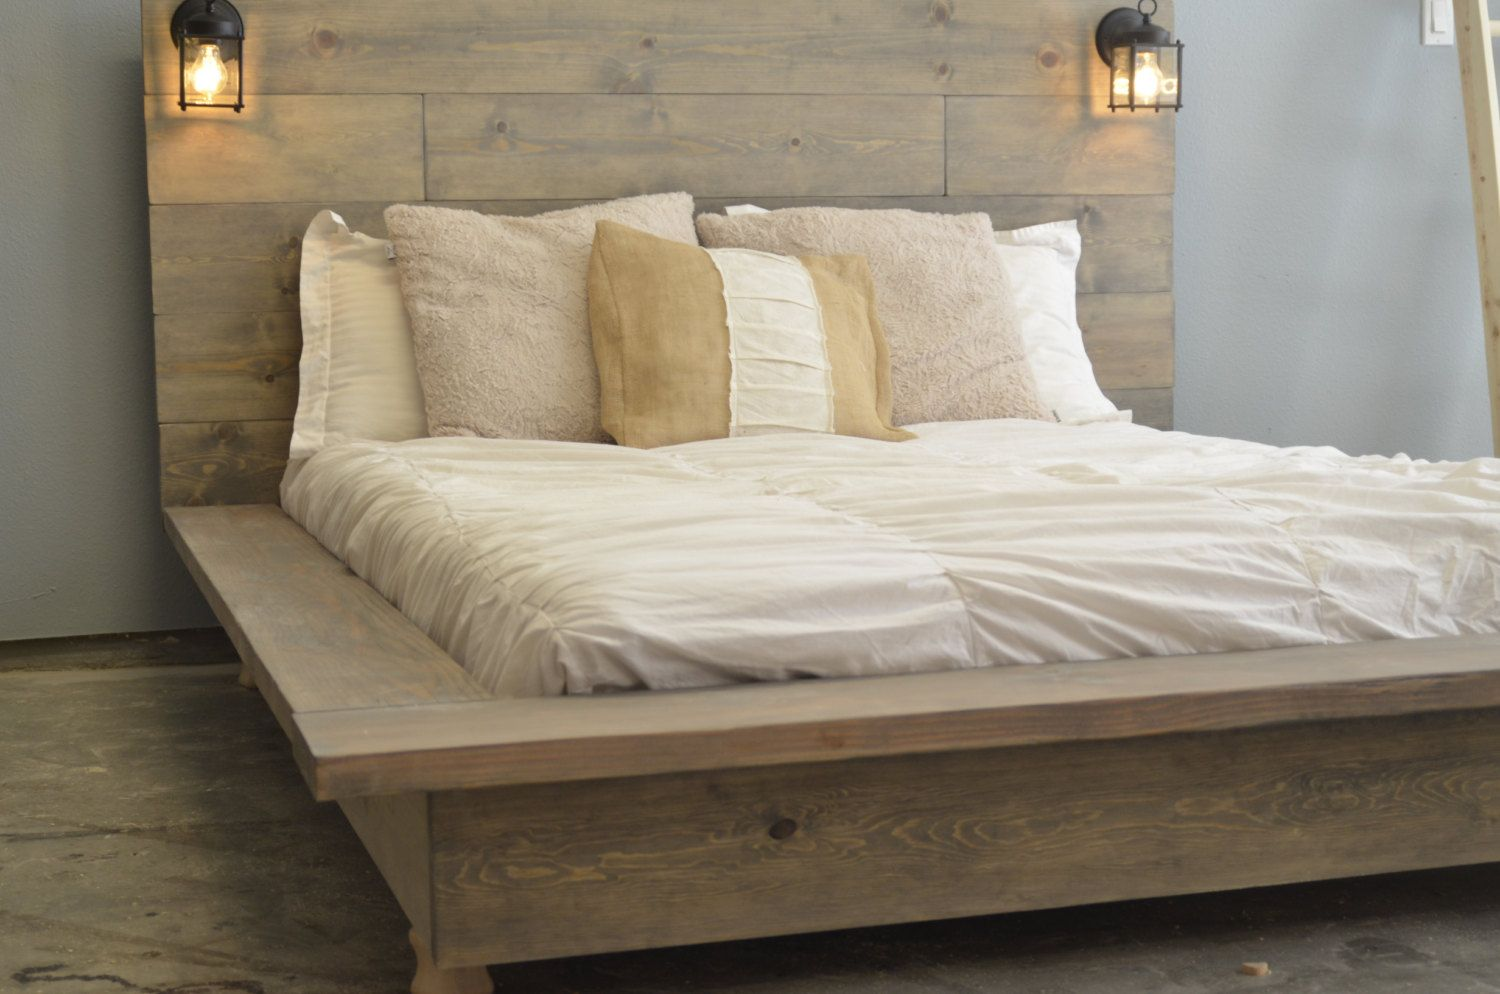 Floating Rustic Wood Platform Bedframe With By Knotsandbiscuits 965 00 Wood Platform Bed Frame Wood Platform Bed Platform Bed Frame